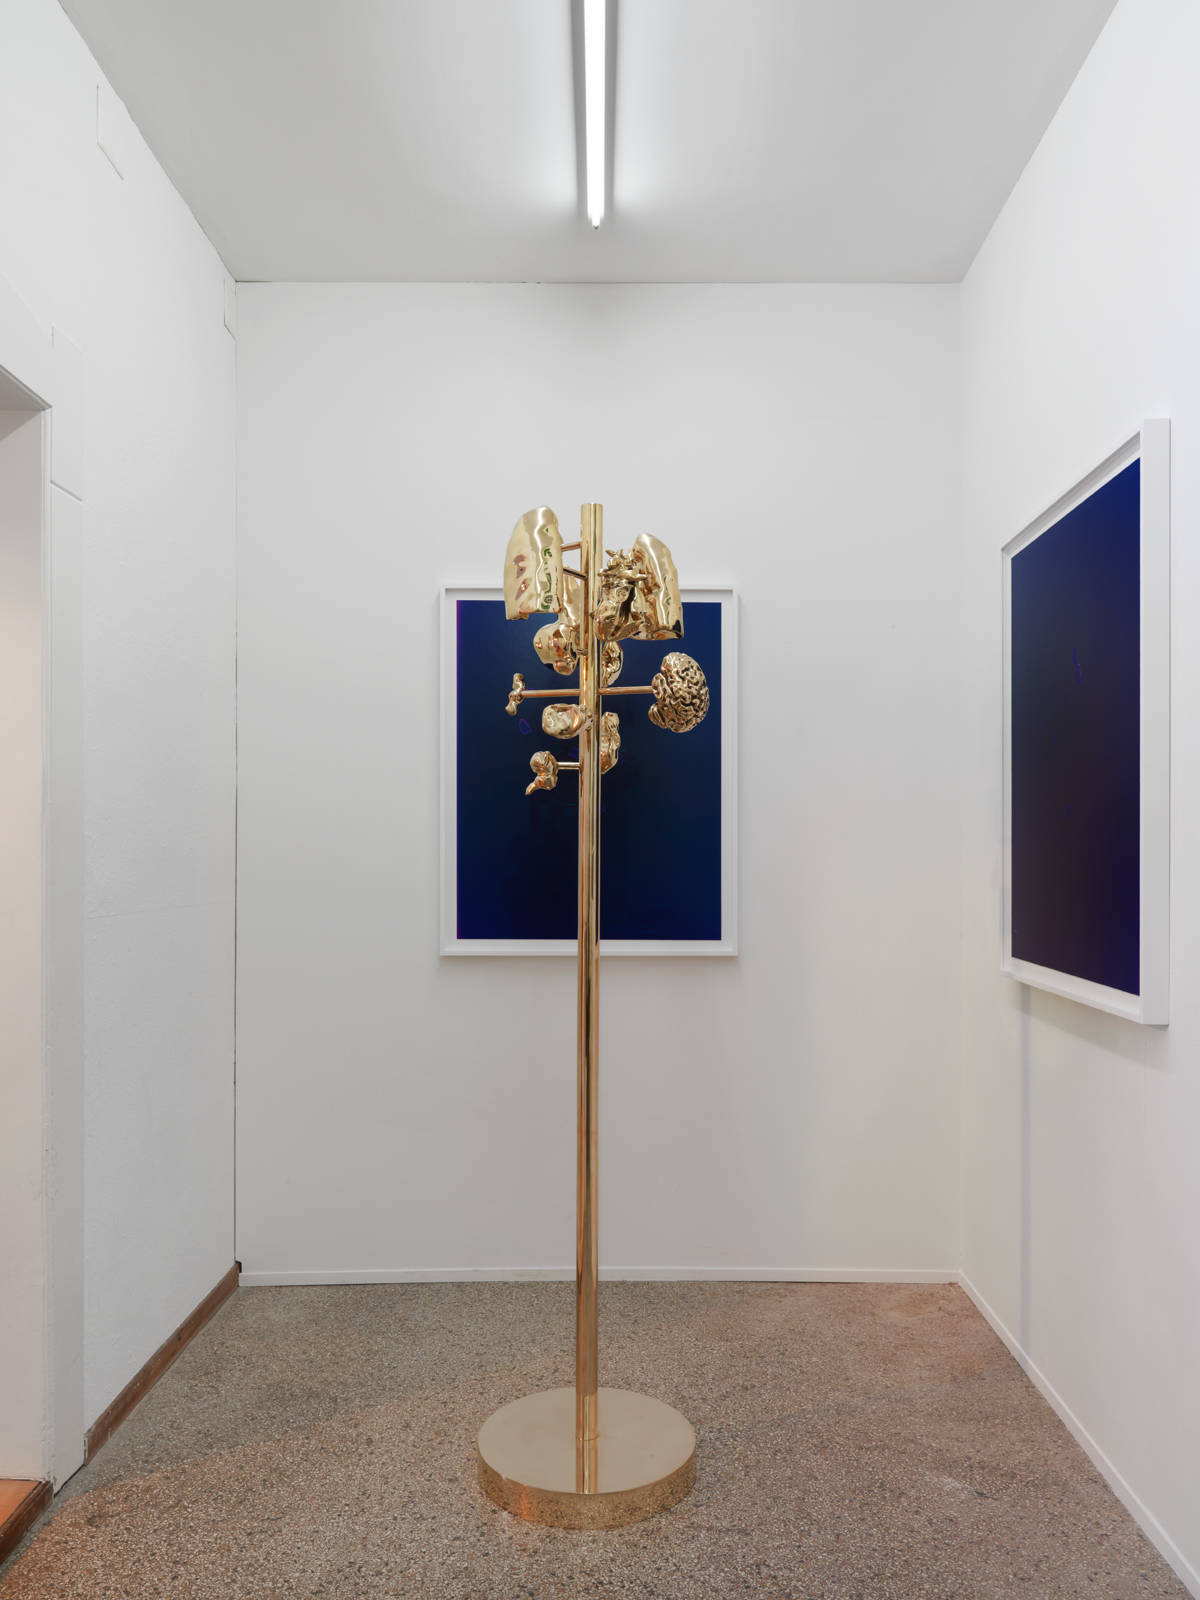 "Melodie Mousset / ""There it Should be like it is Going Inside, like Here"", exhibition view, Galerie Barbara Seiler, Zürich / 2016"